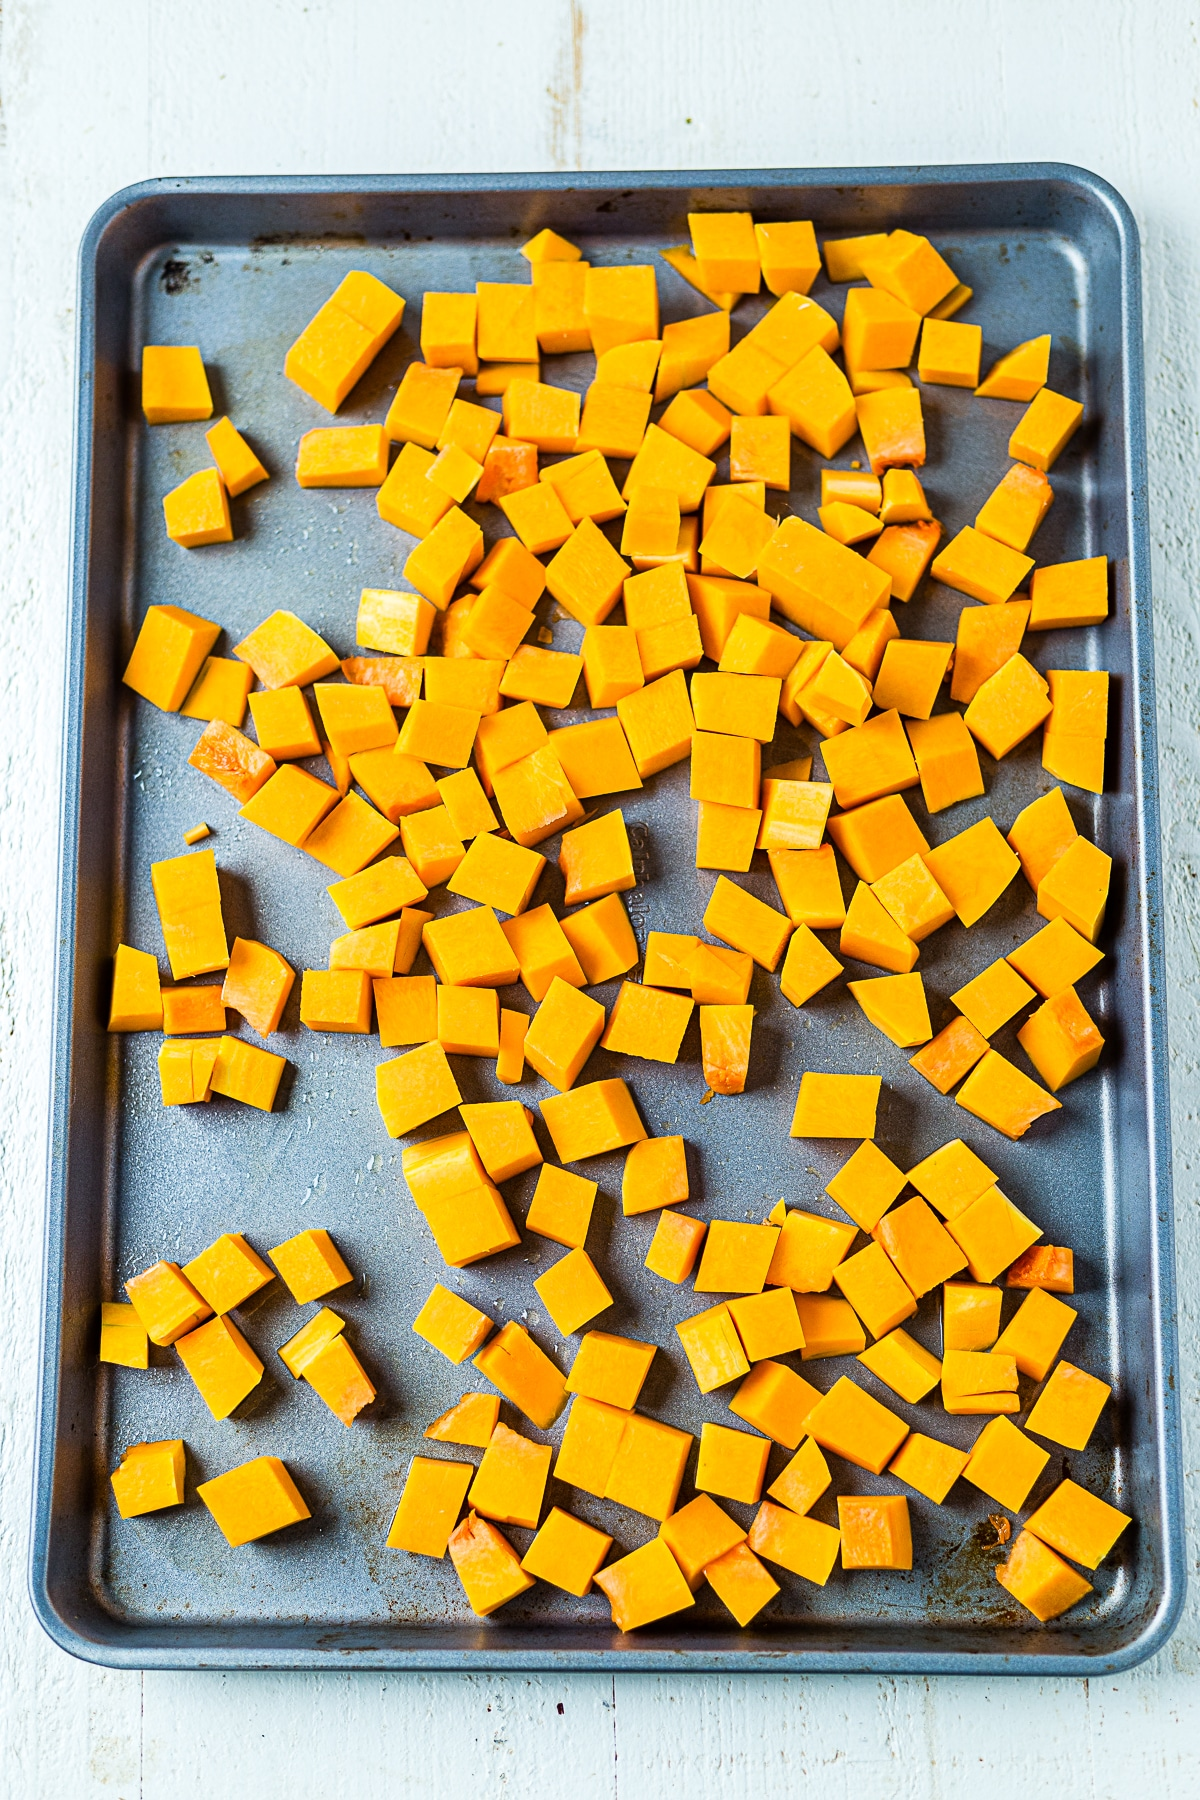 butternut squash on a baking sheet before roasting